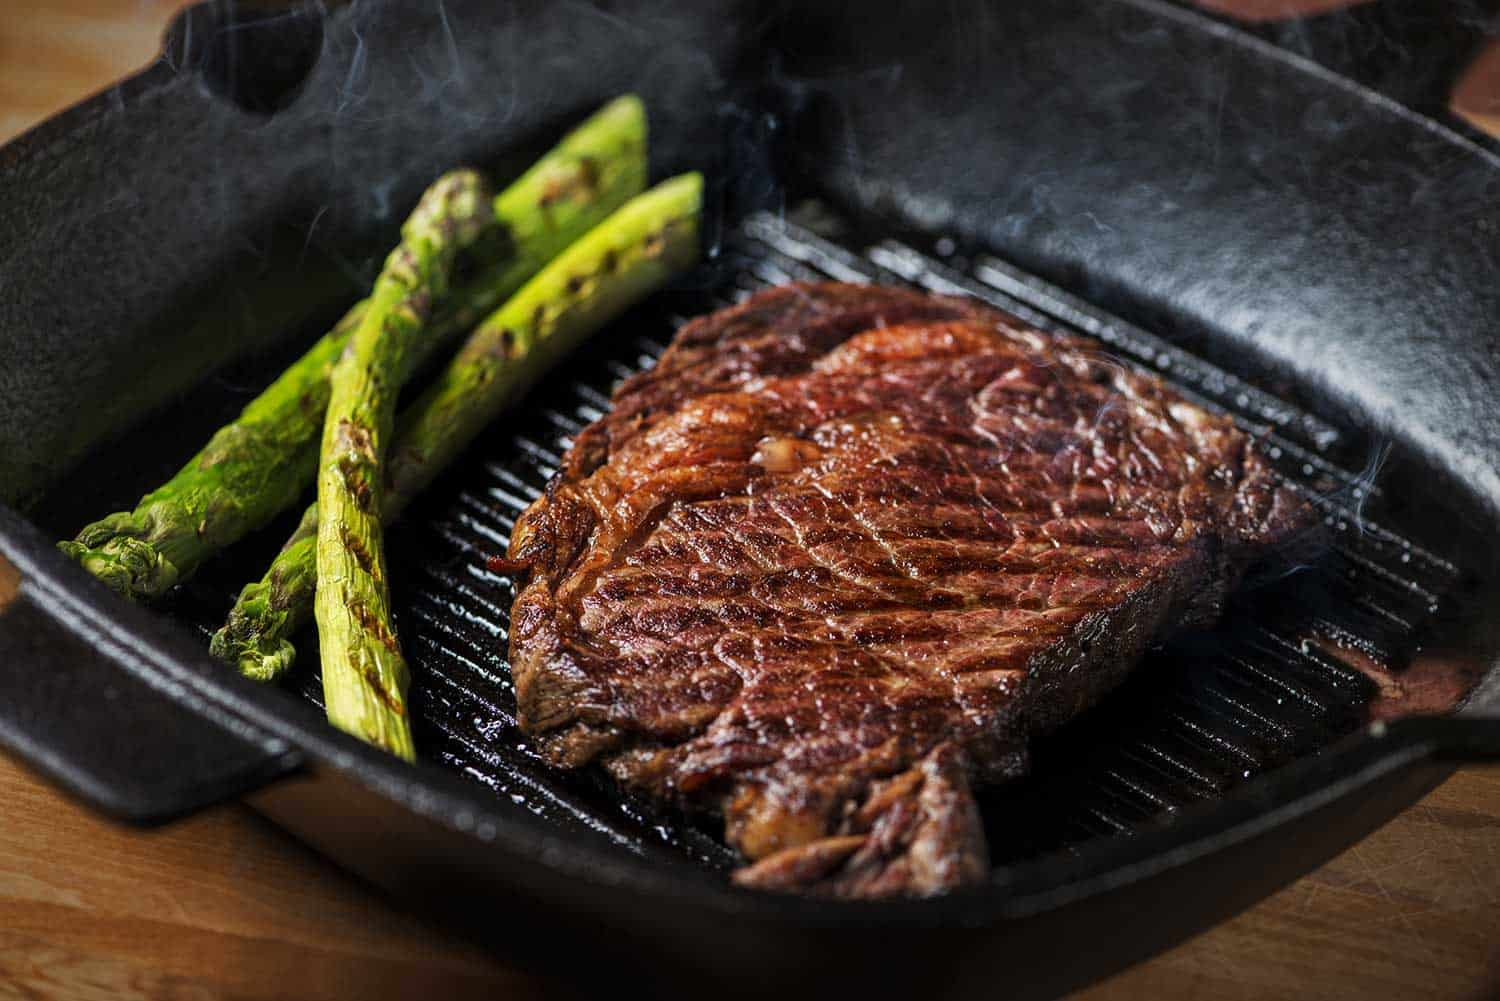 Ribeye steak grilled with asparagus, with visible smoke rising from the hot cast iron pan